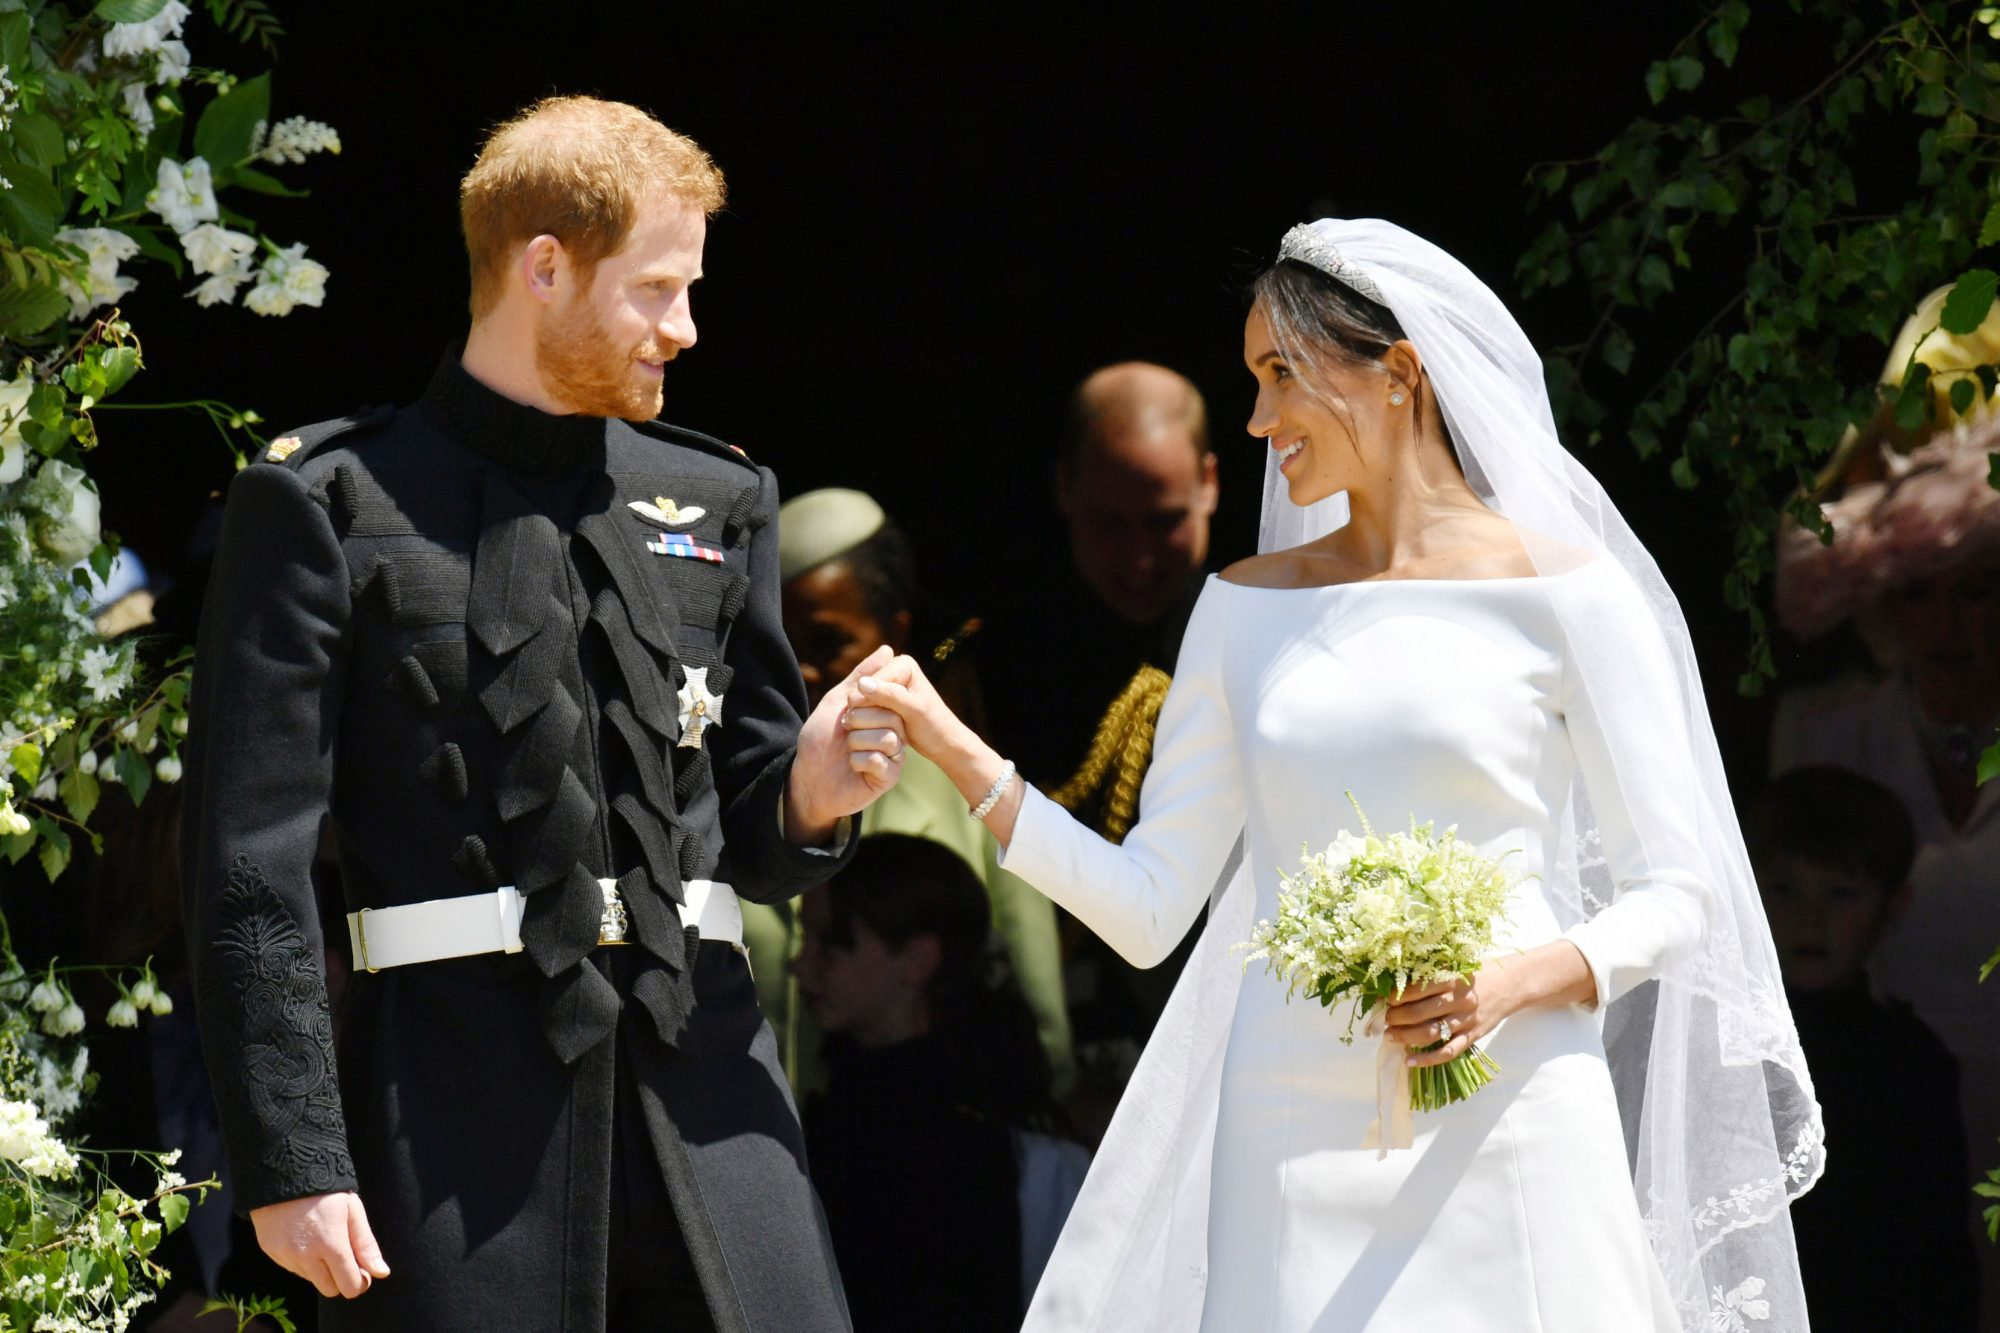 Prince Harry and Meghan Markle Wedding Day